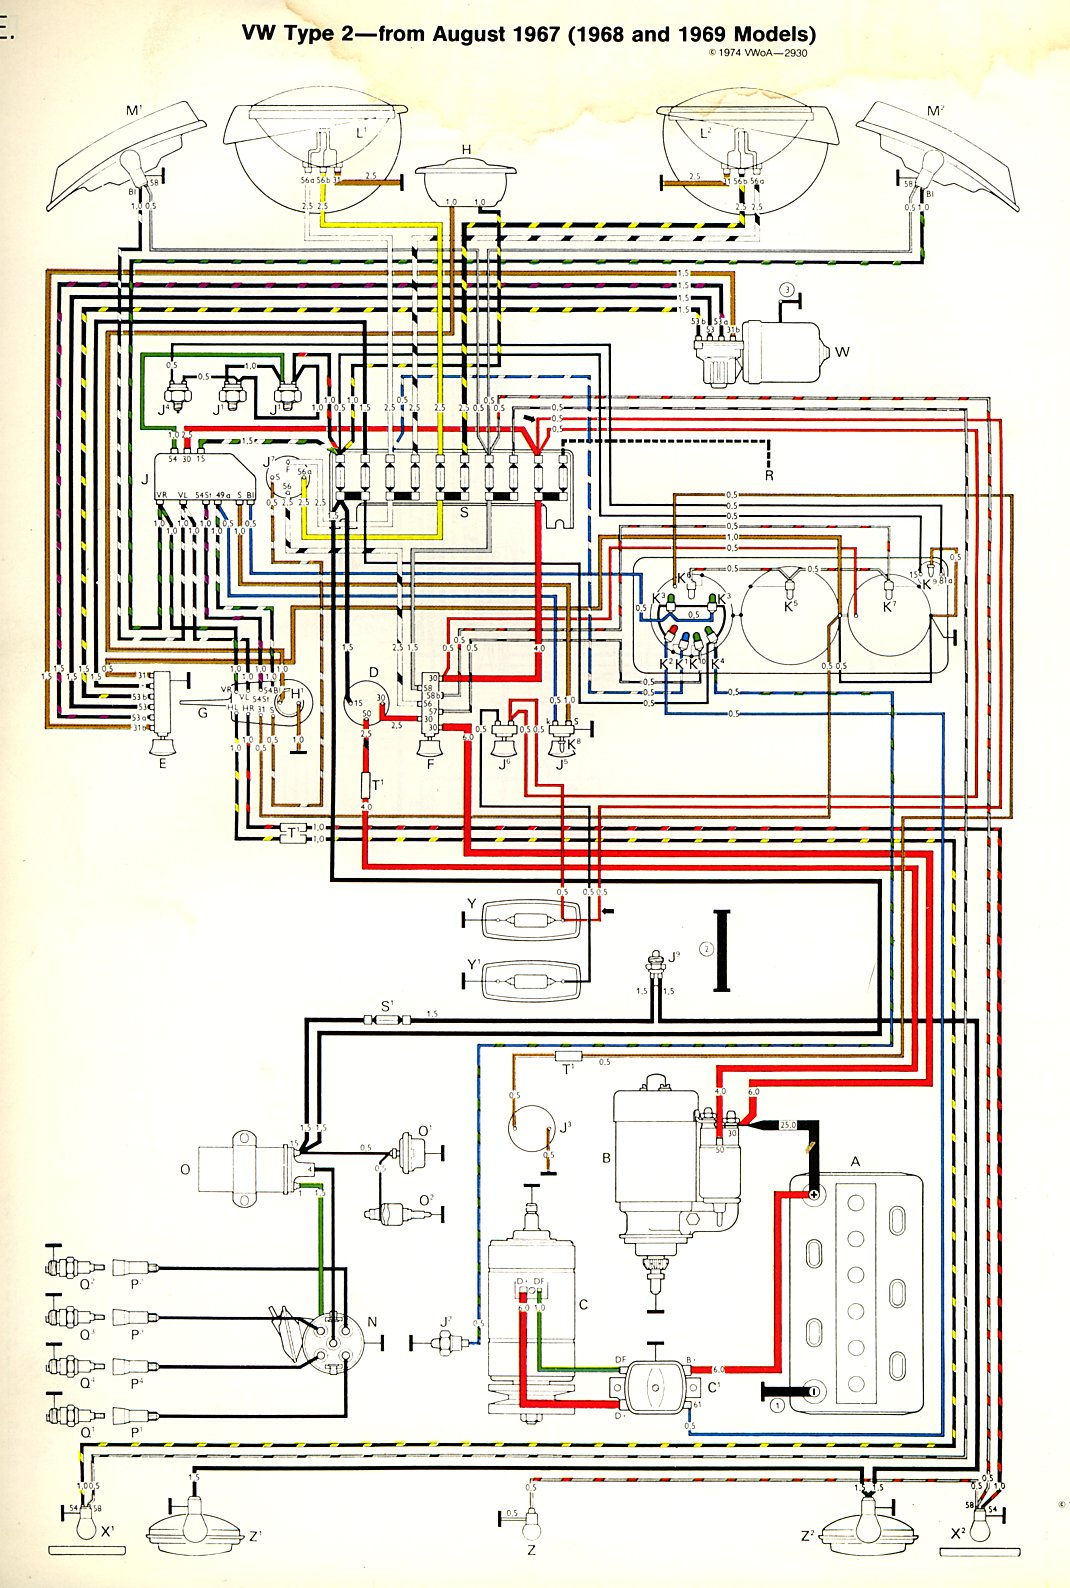 baybus_6869a thesamba com type 2 wiring diagrams 1973 vw wiring diagram at eliteediting.co